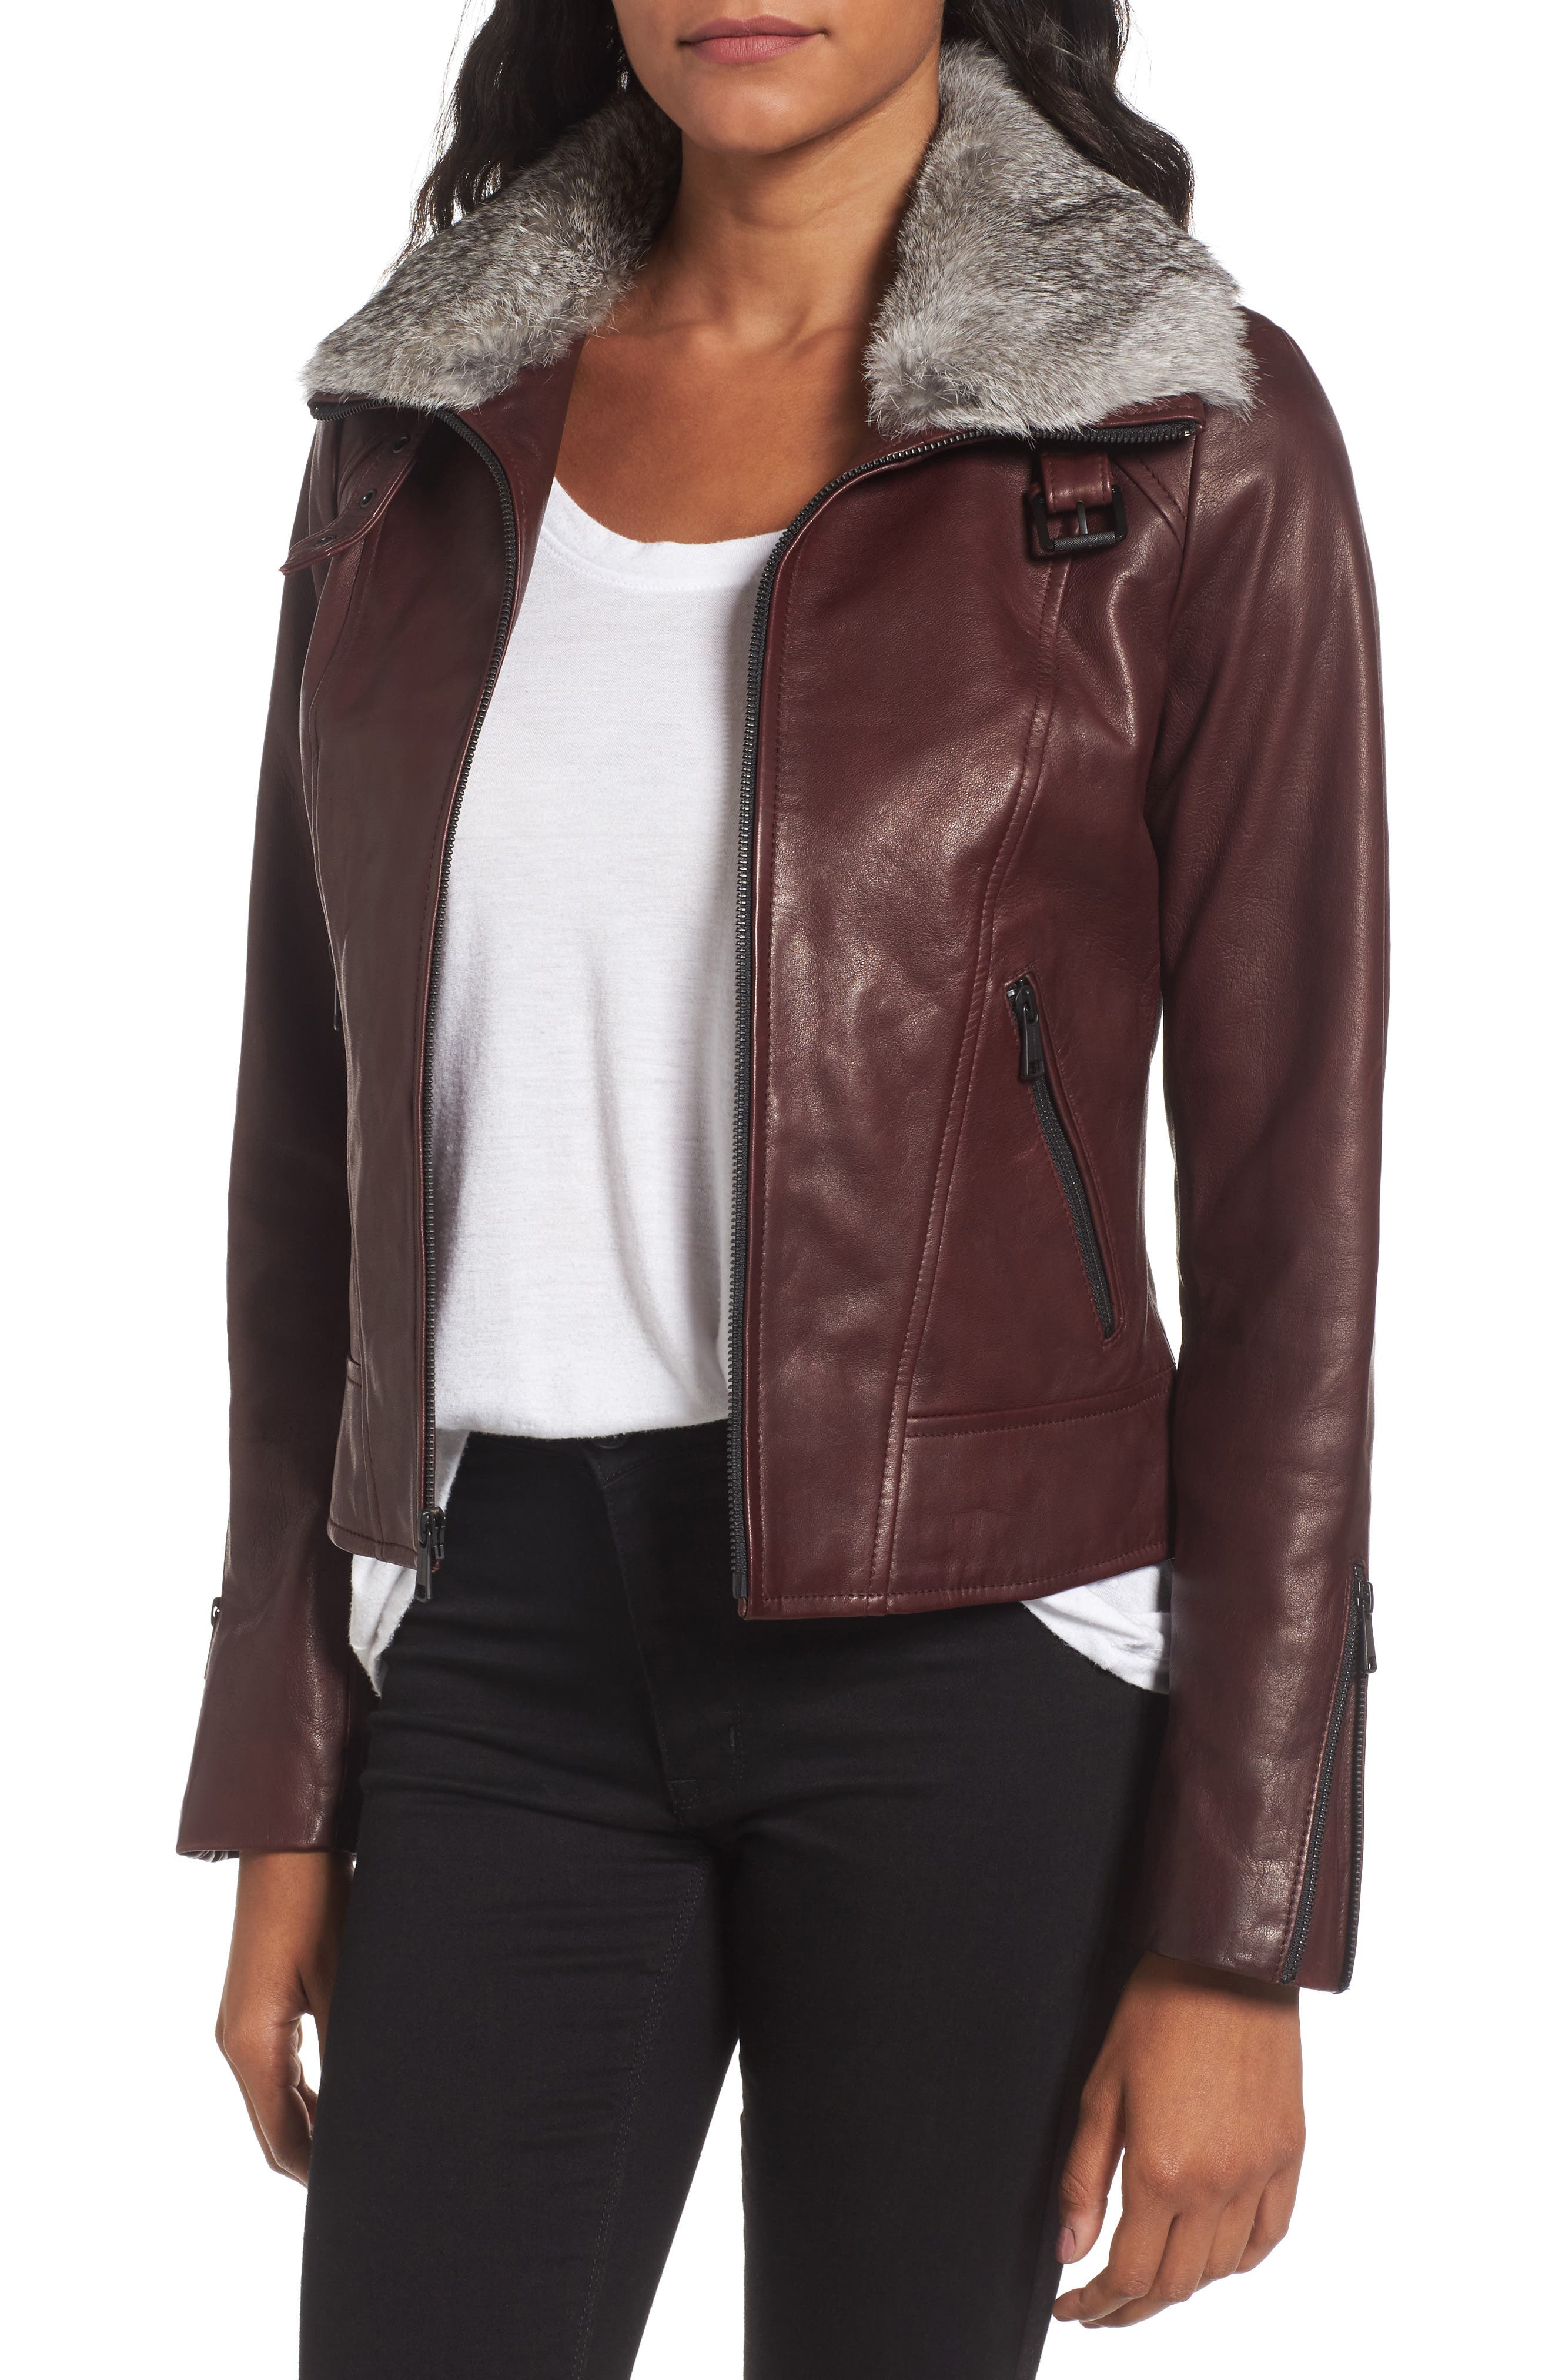 Cambridge Genuine Rabbit Fur & Leather Jacket,                         Main,                         color, Burgundy